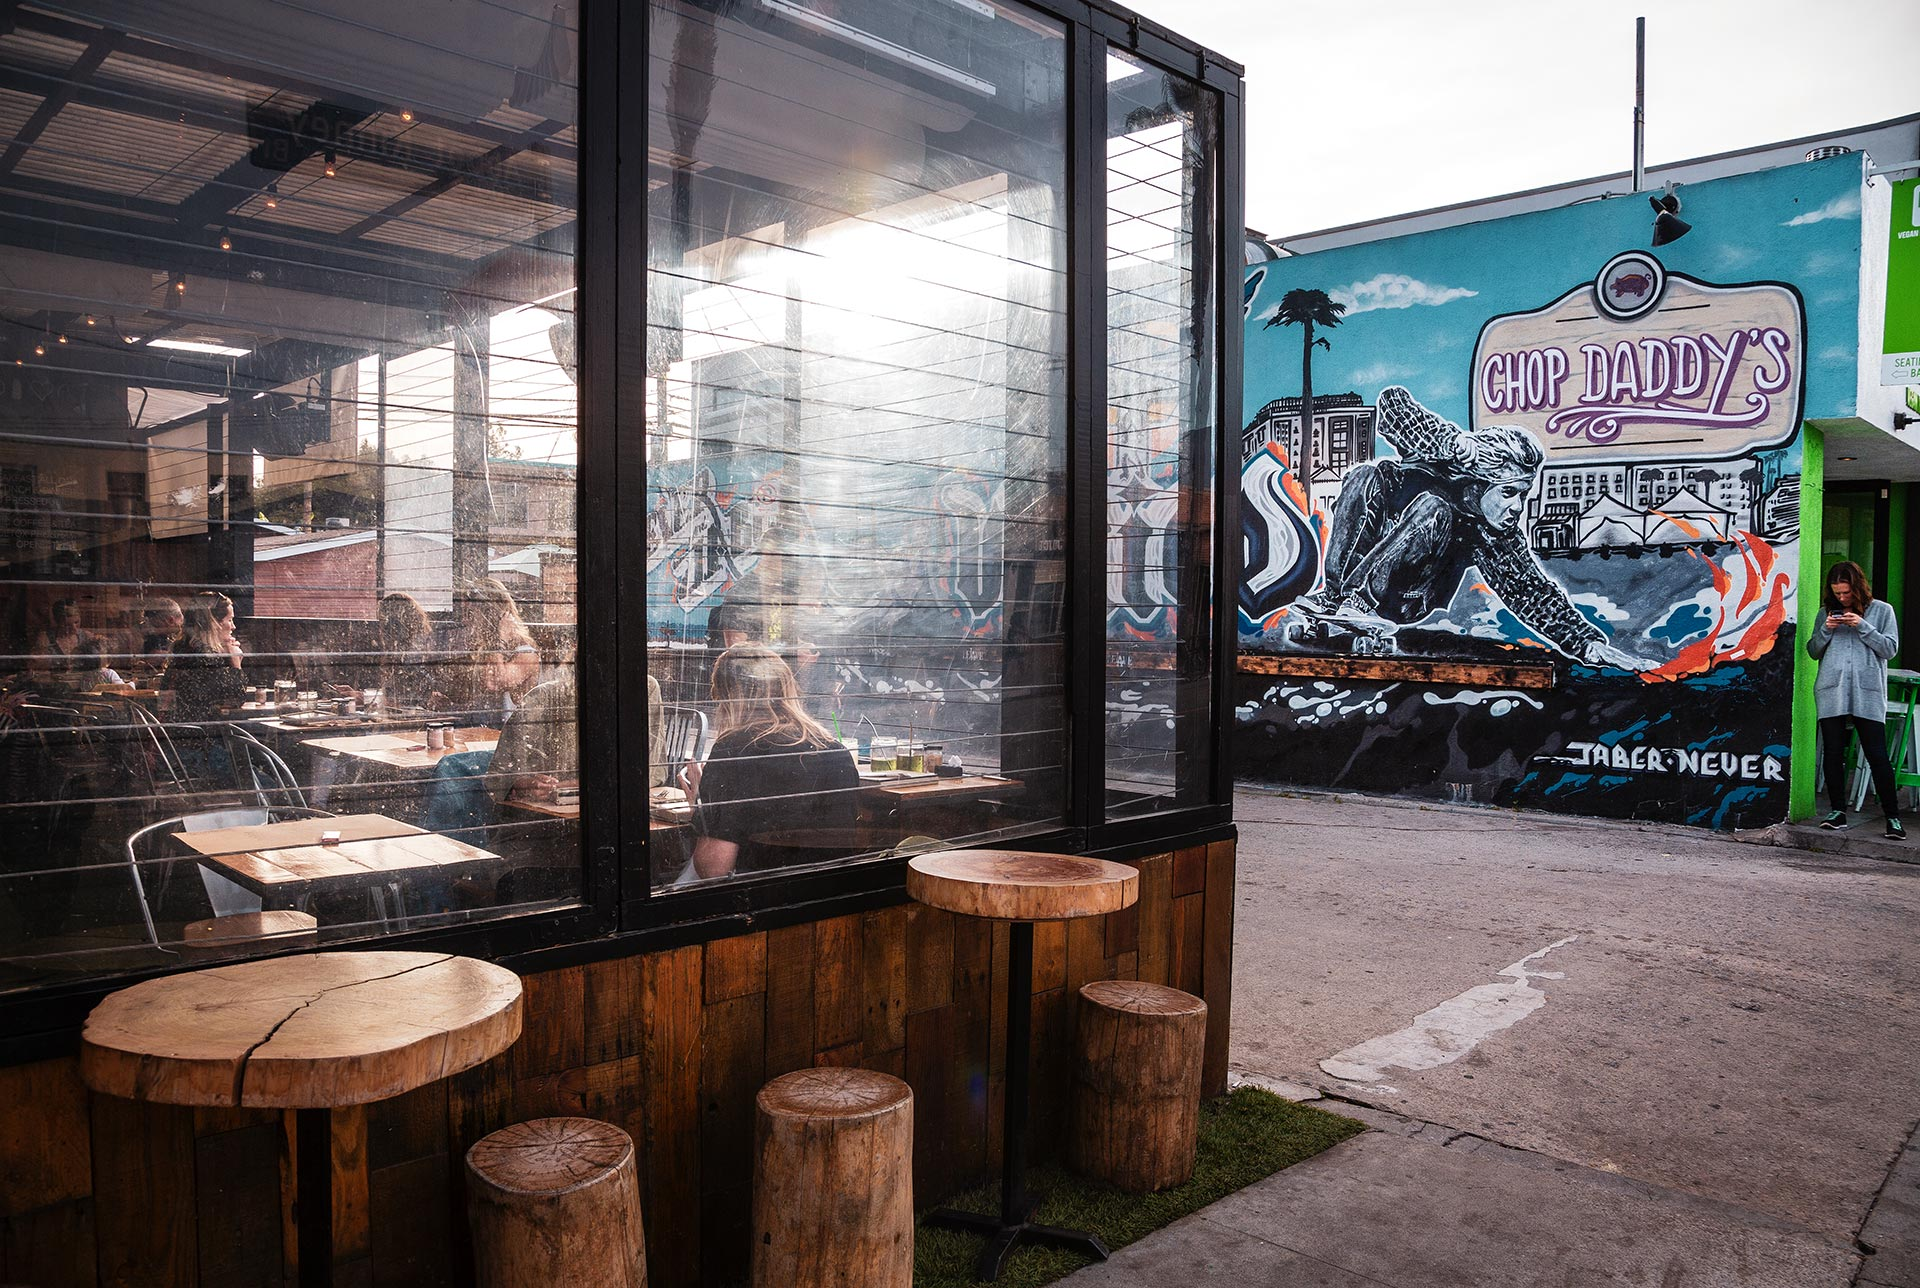 Abbot Kinney Murals and Coffee Shop